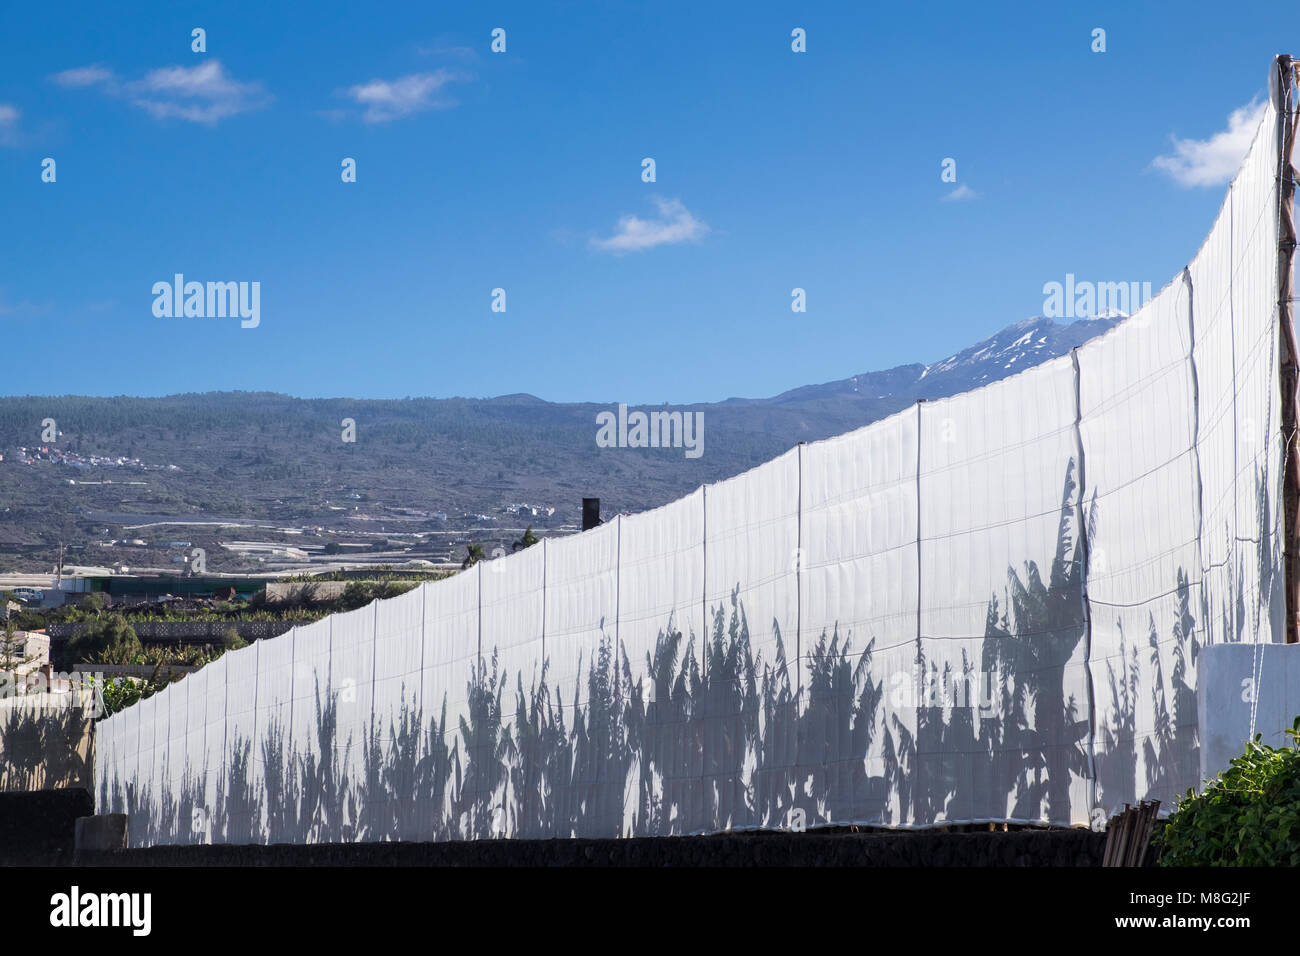 Shadows of banana plants on a white netting fence around a plantation, with blue sky and a snow capped mount Teide - Stock Image